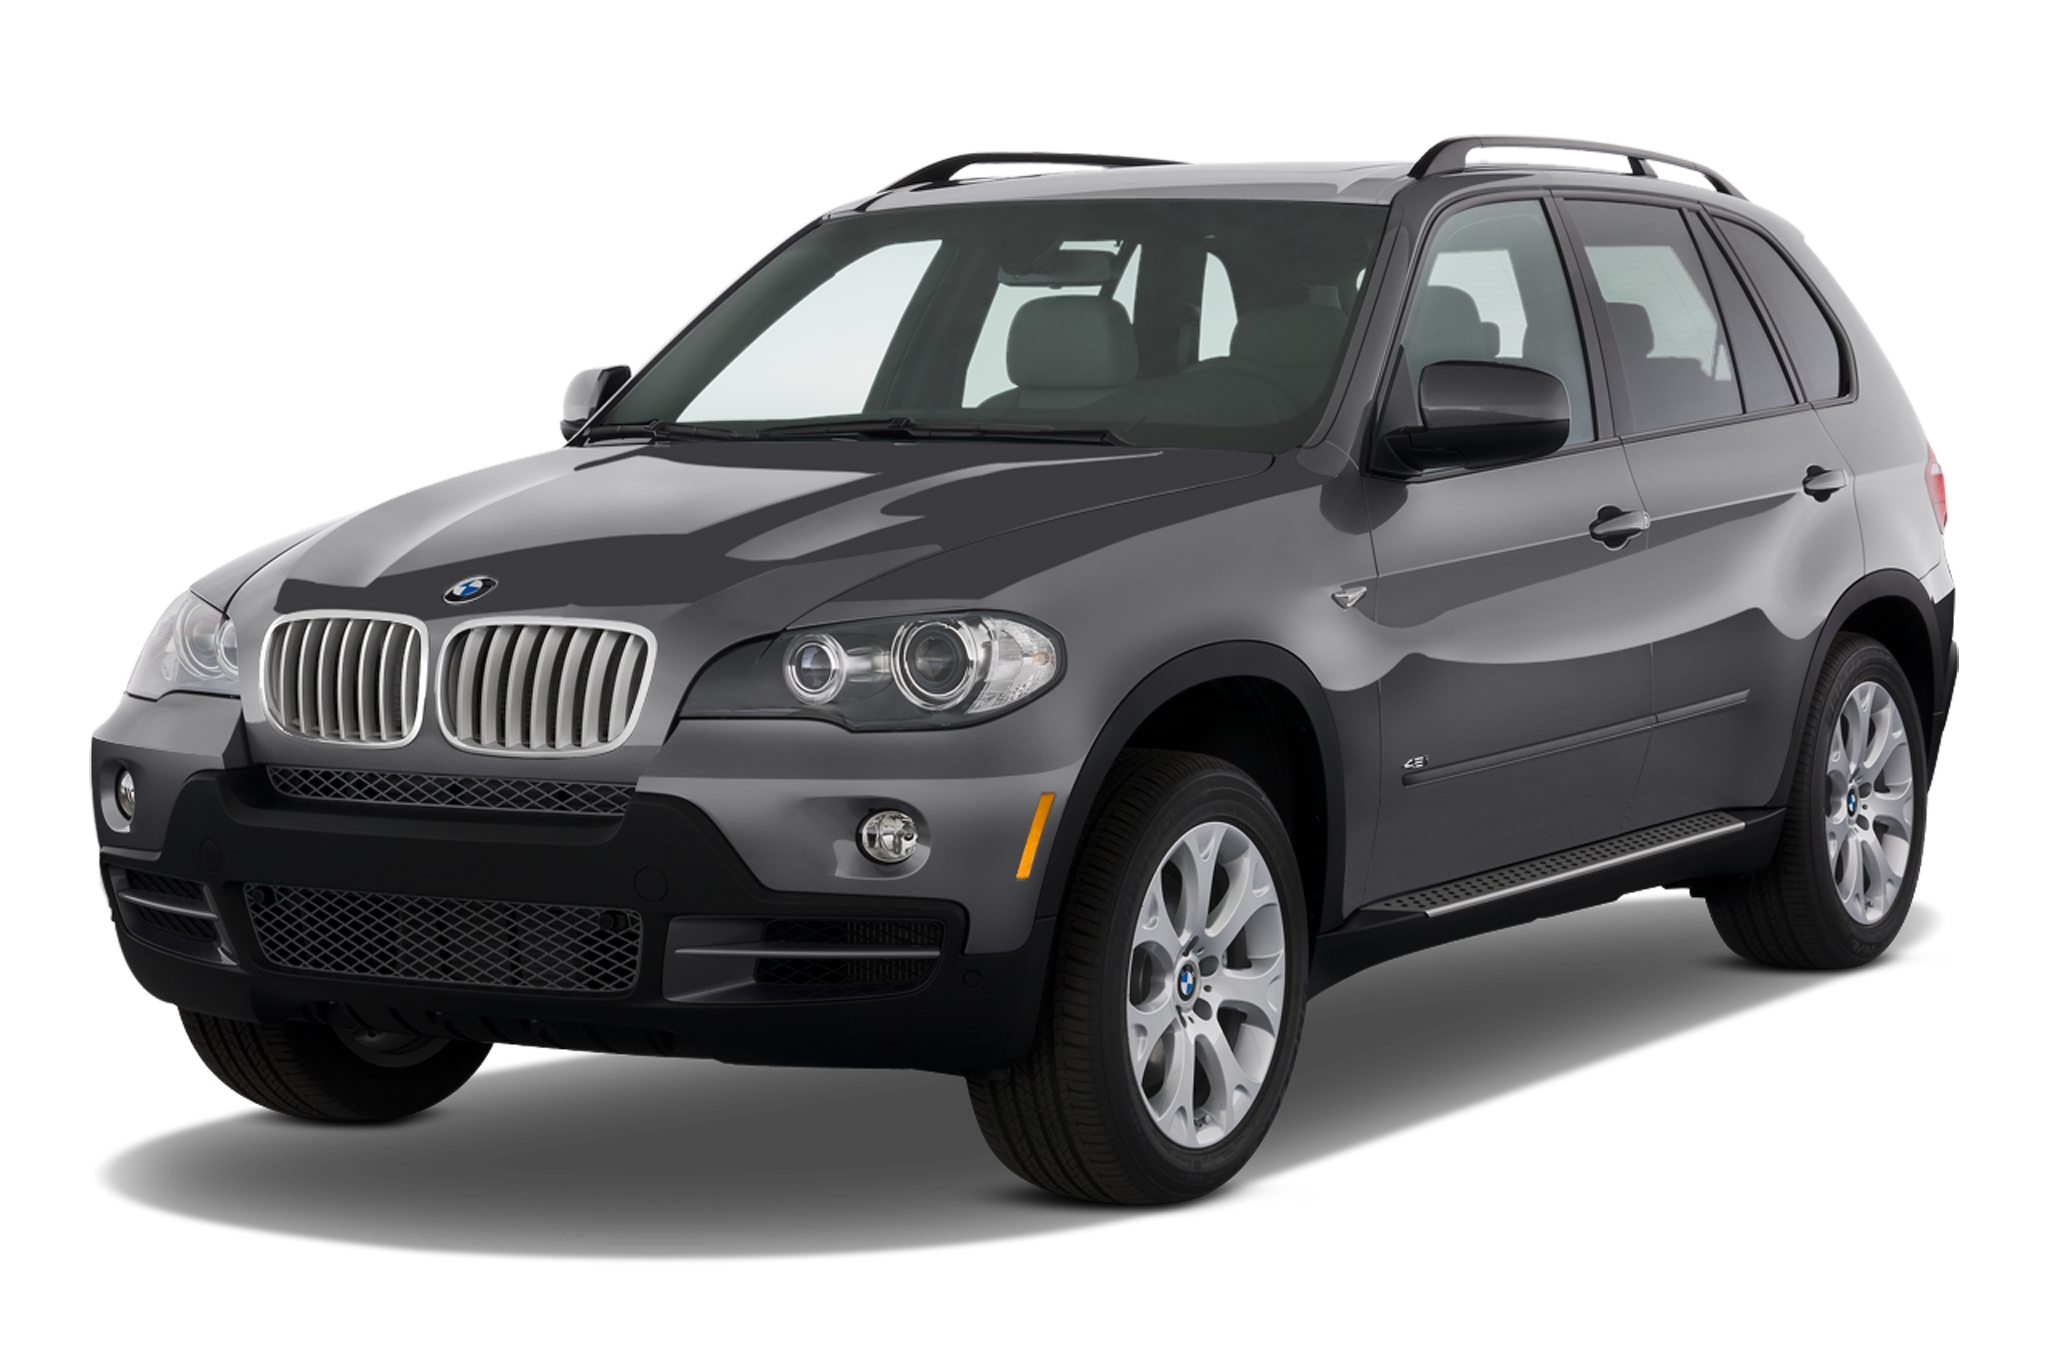 2010 Bmw X5m And X6m 2009 Sneak Preview Automobile